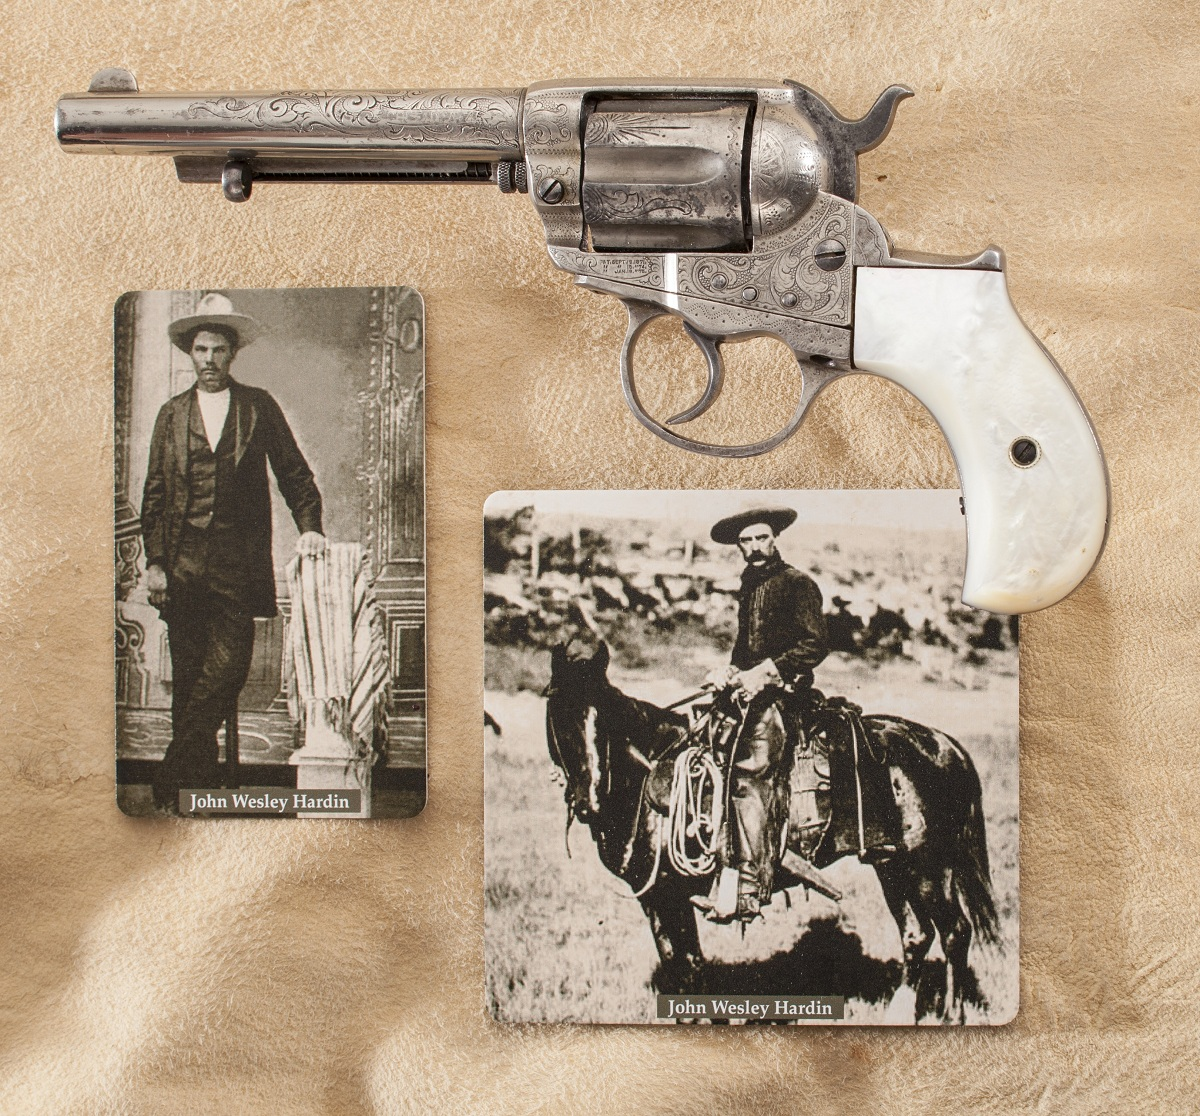 4 Revolvers Used by Famous Lawmen and Outlaws of the Old West